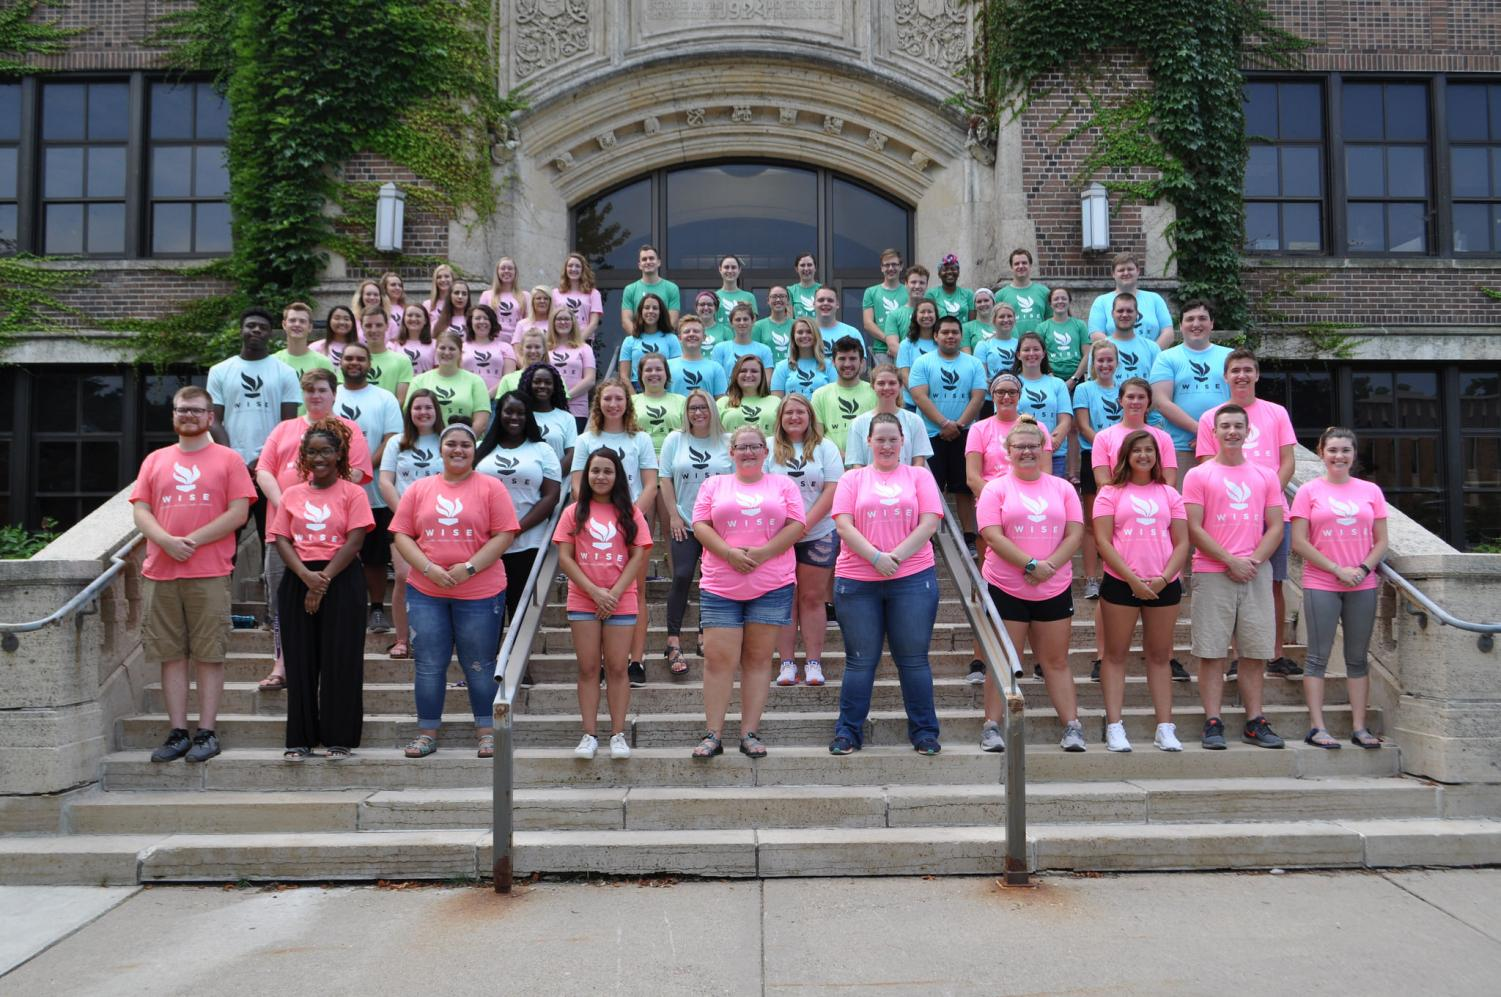 New RAs stand outside of Somsen Hall during their training week, their shirts display the new WISE logo which represents Housing's mission statement of being welcoming, inclusive, safe and engaging and each building staff received a different color.